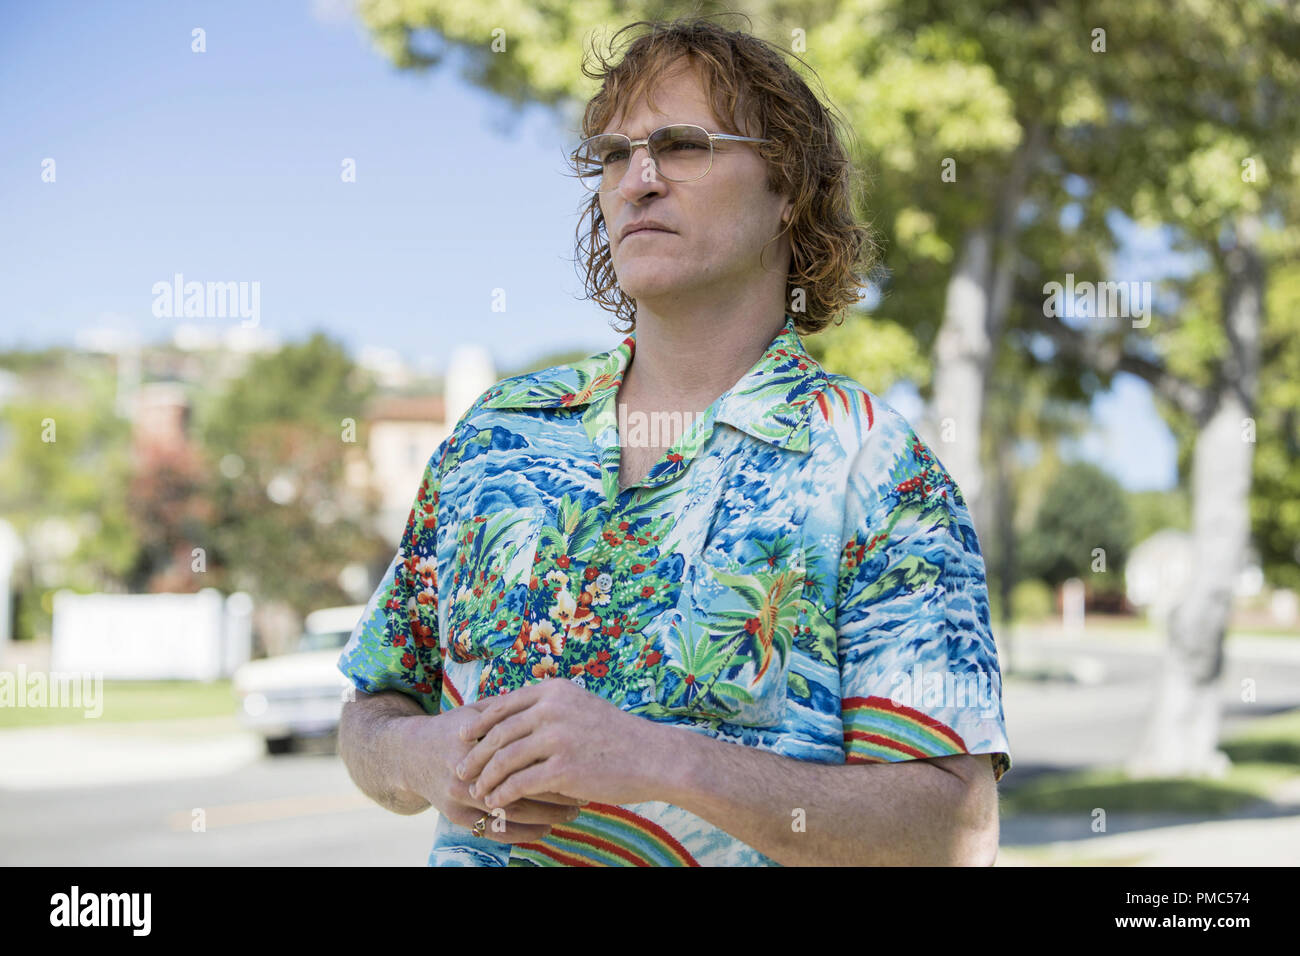 Joaquin Phoenix stars as John Callahan in DON'T WORRY, HE WON'T GET FAR ON FOOT. (2018) AMAZON CONTENT SERVICES LLC - Stock Image